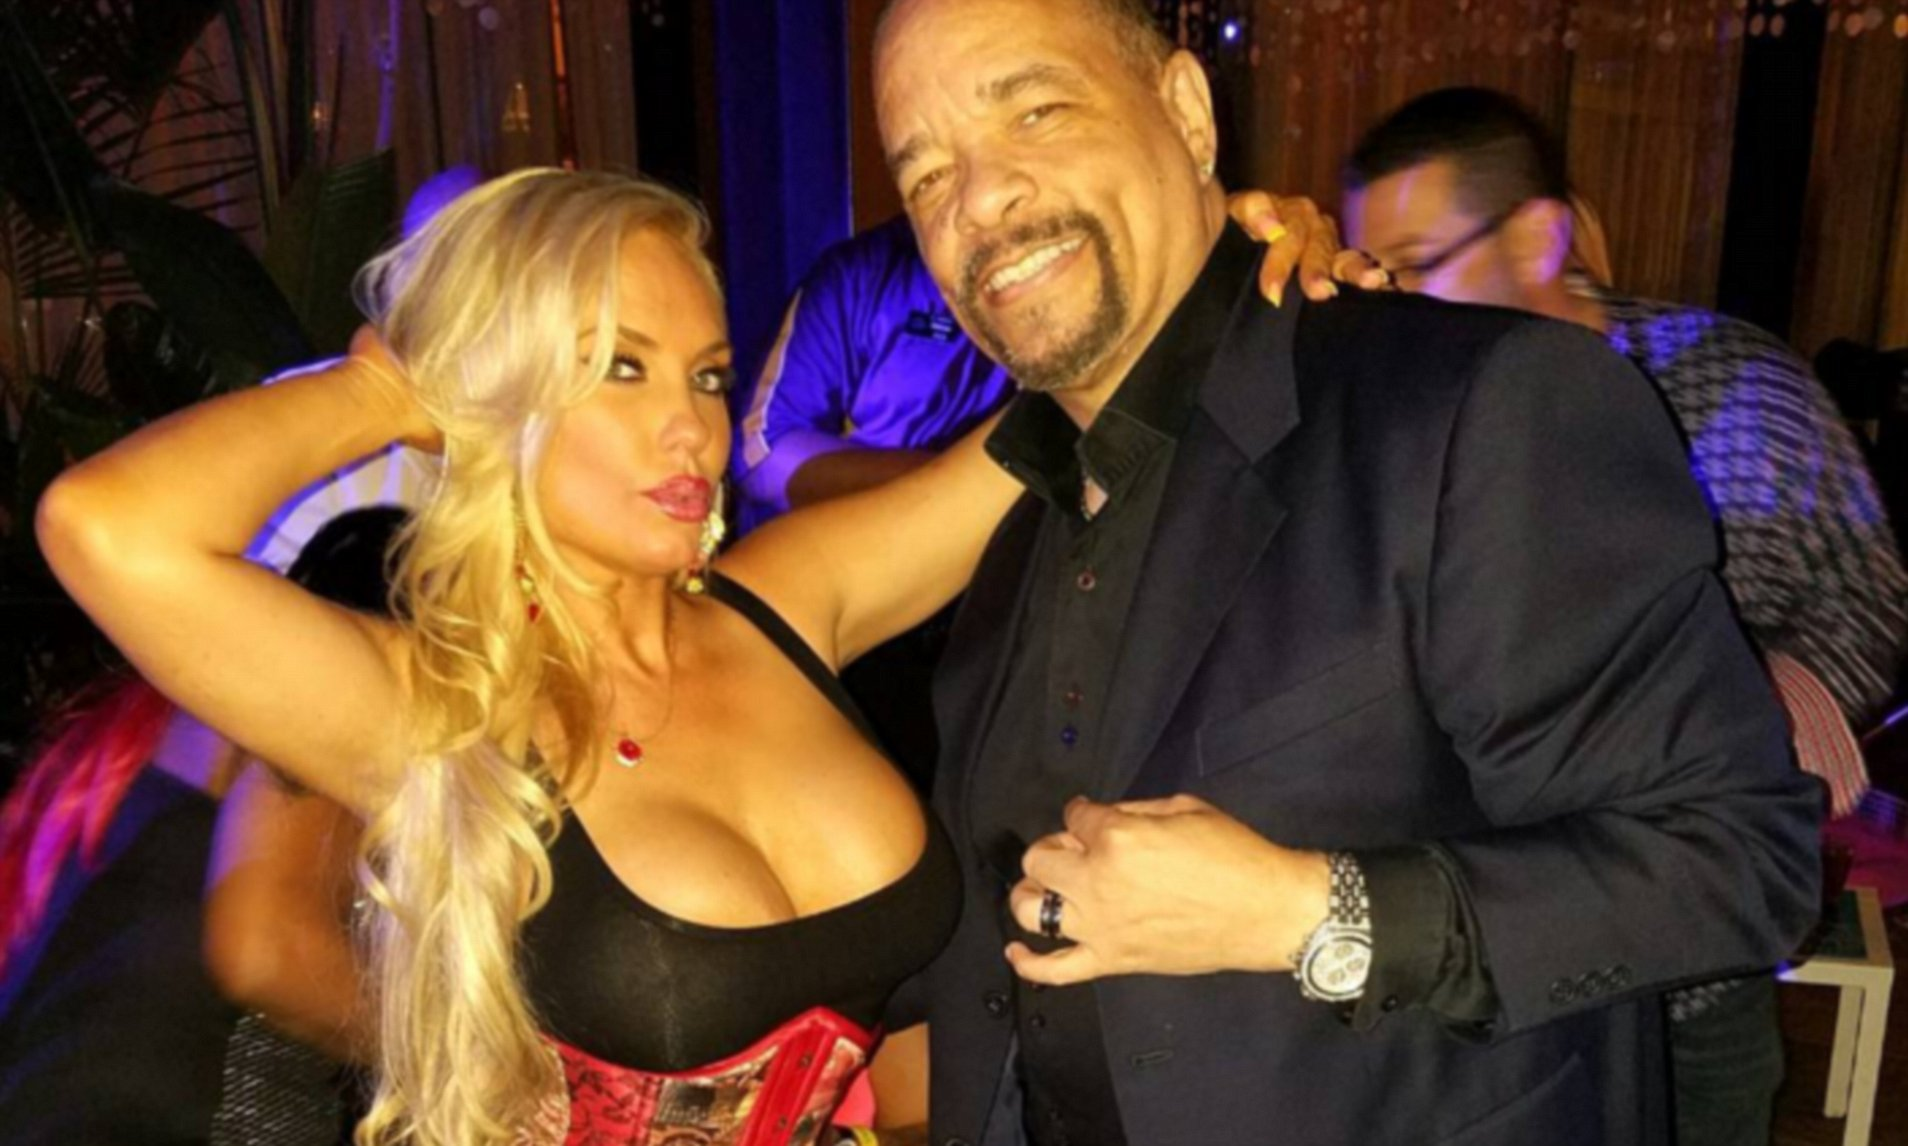 Horny and naked ice t coco